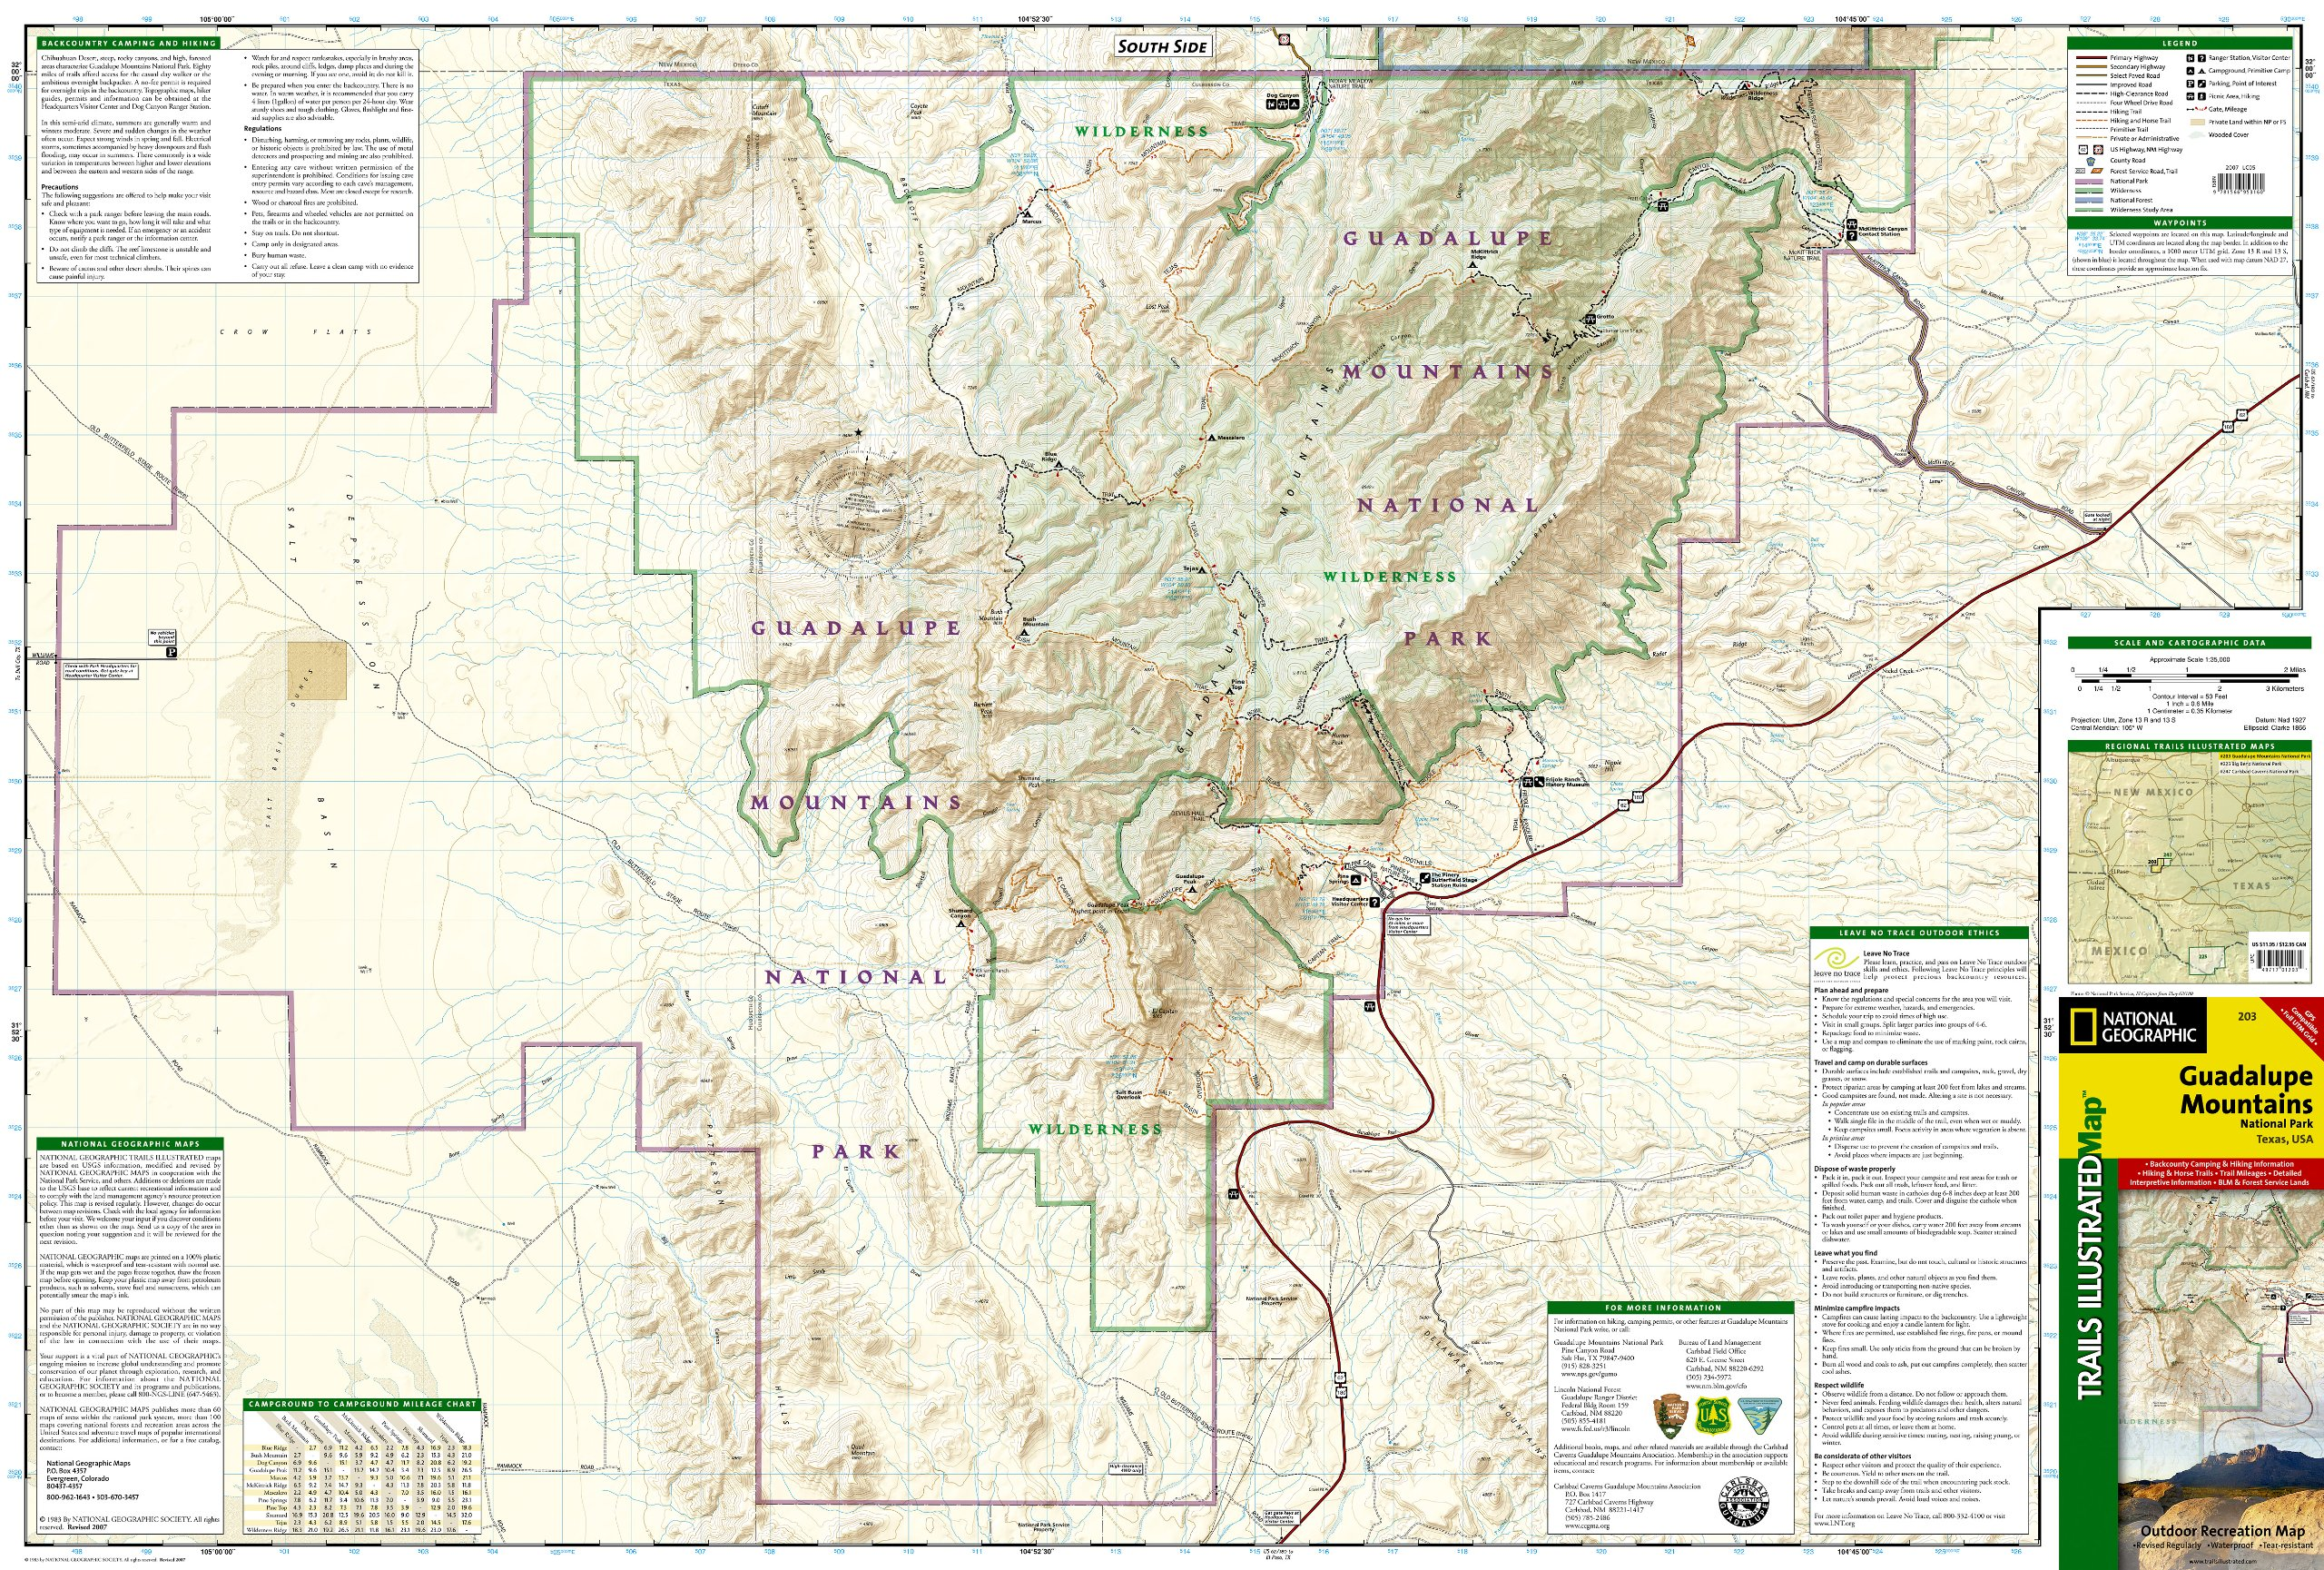 Guadalupe Mountains National Park Map Guadalupe Mountains National Park (National Geographic Trails